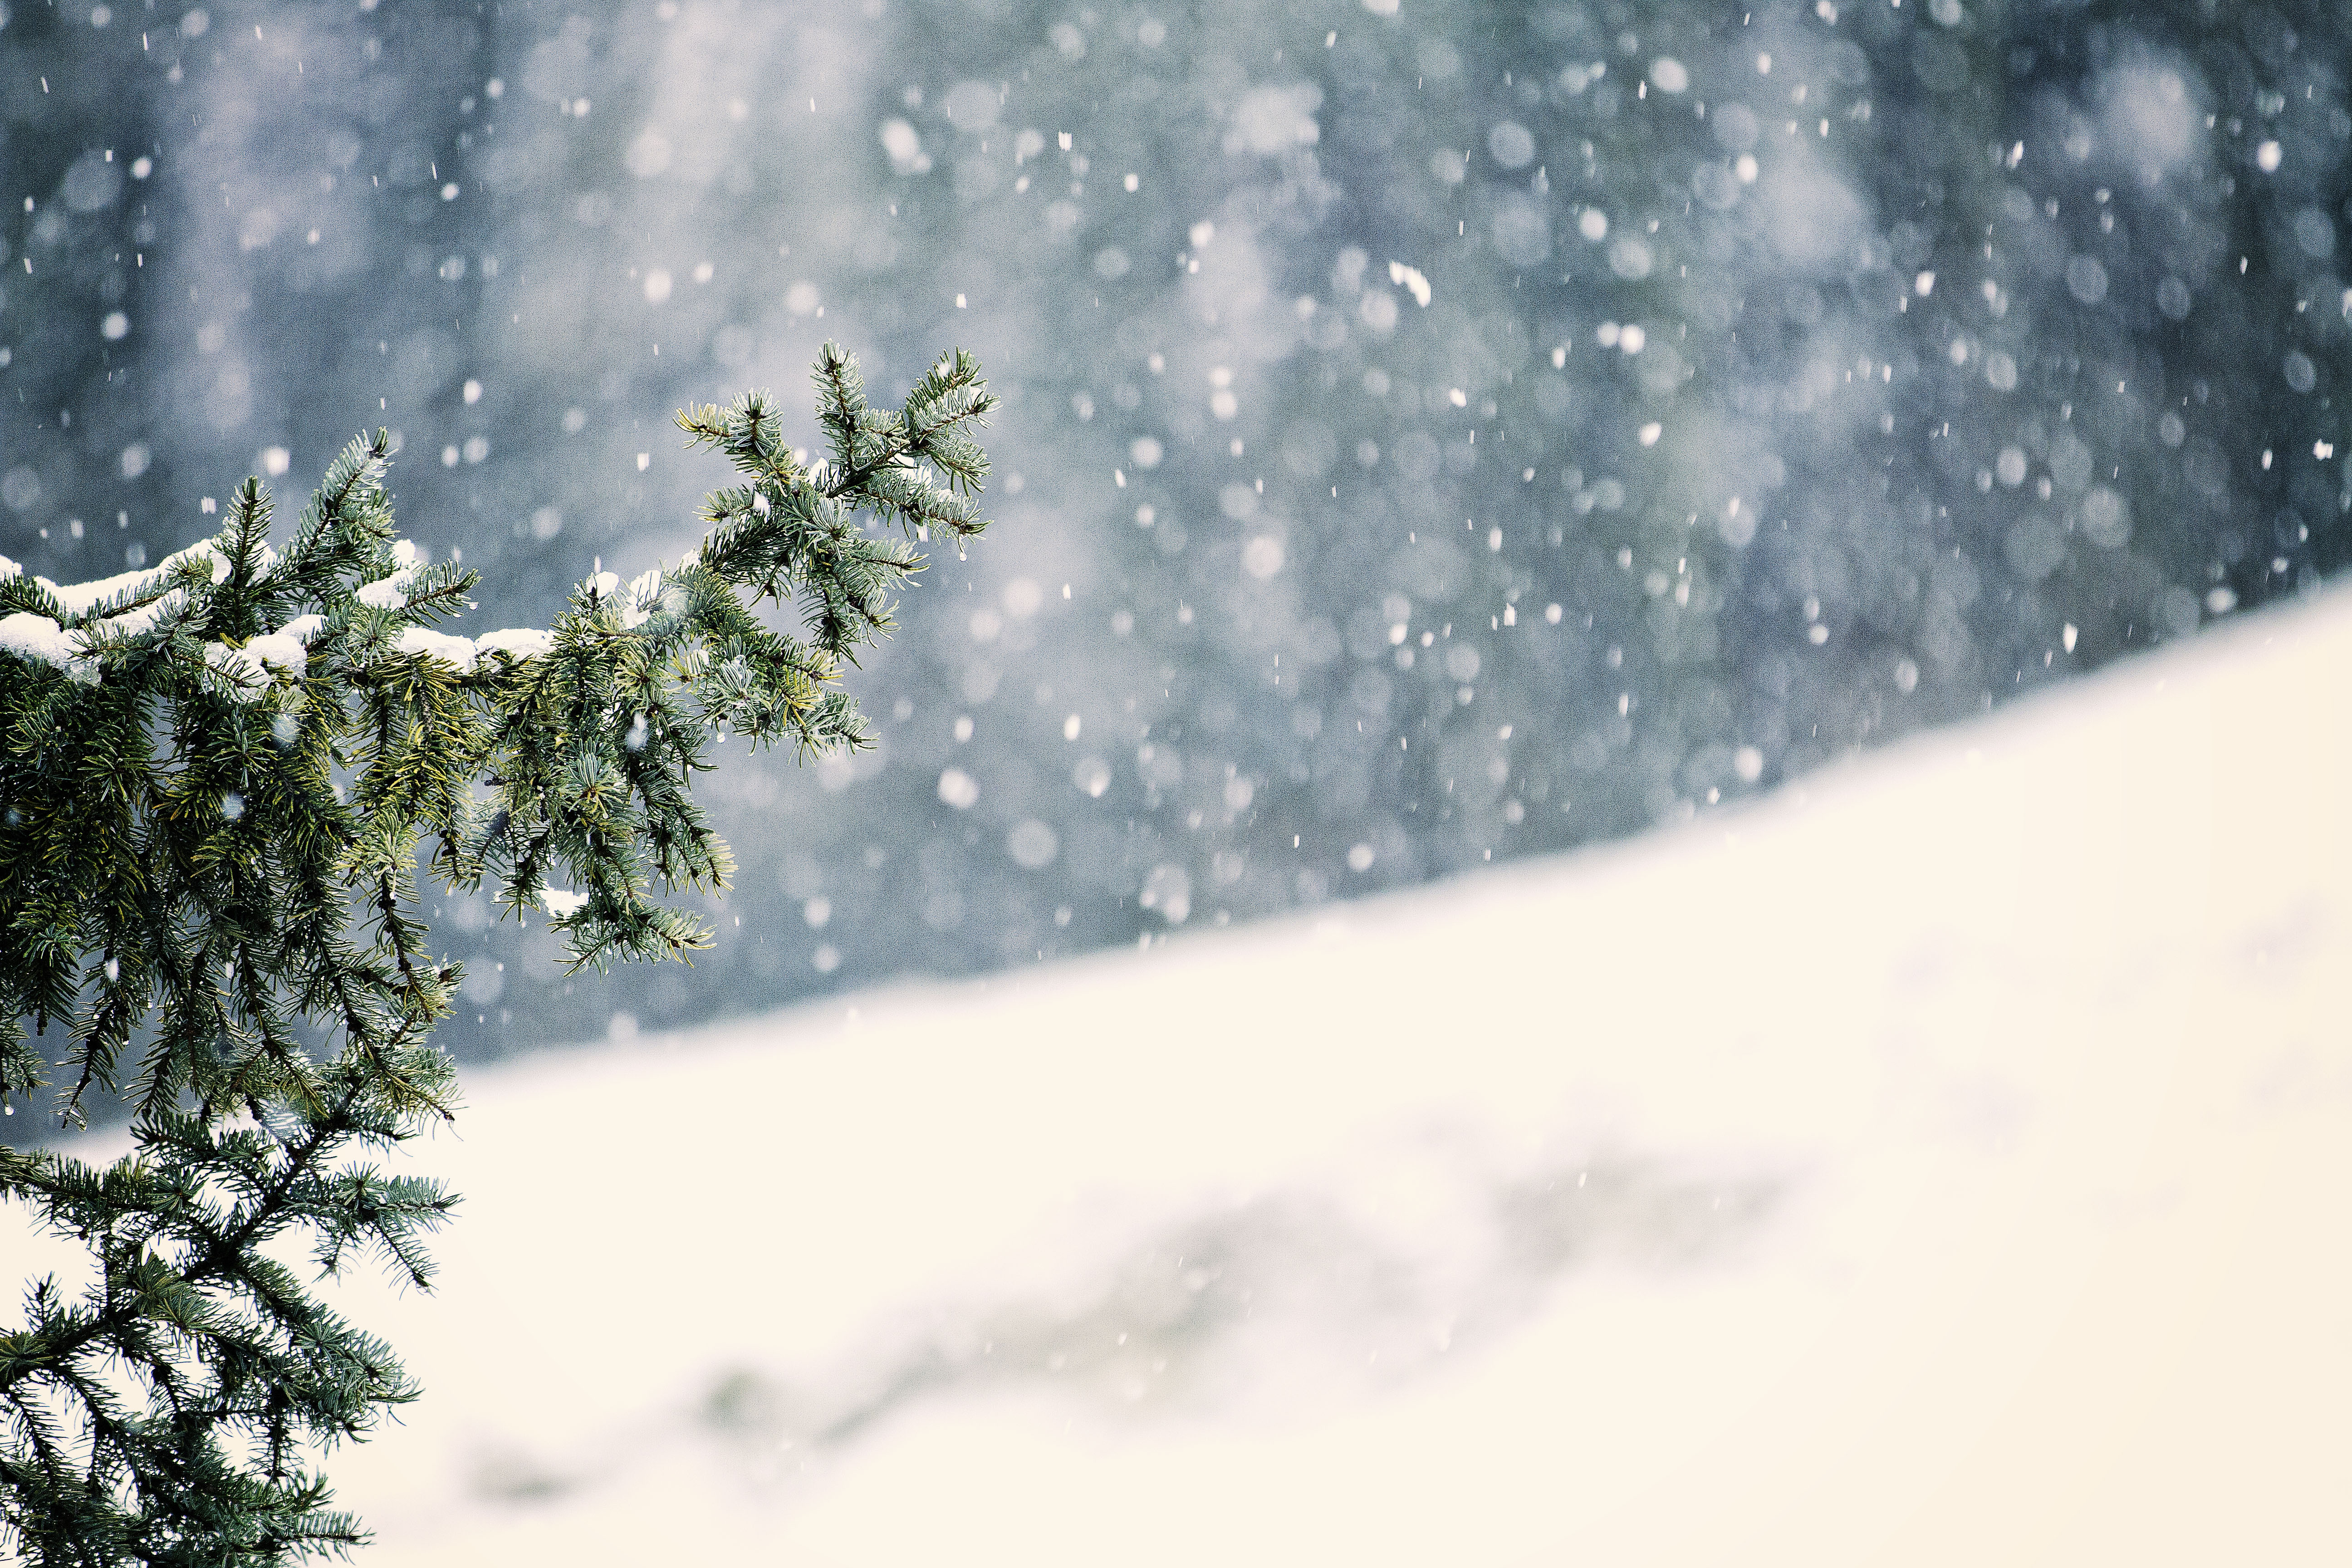 snowing pictures